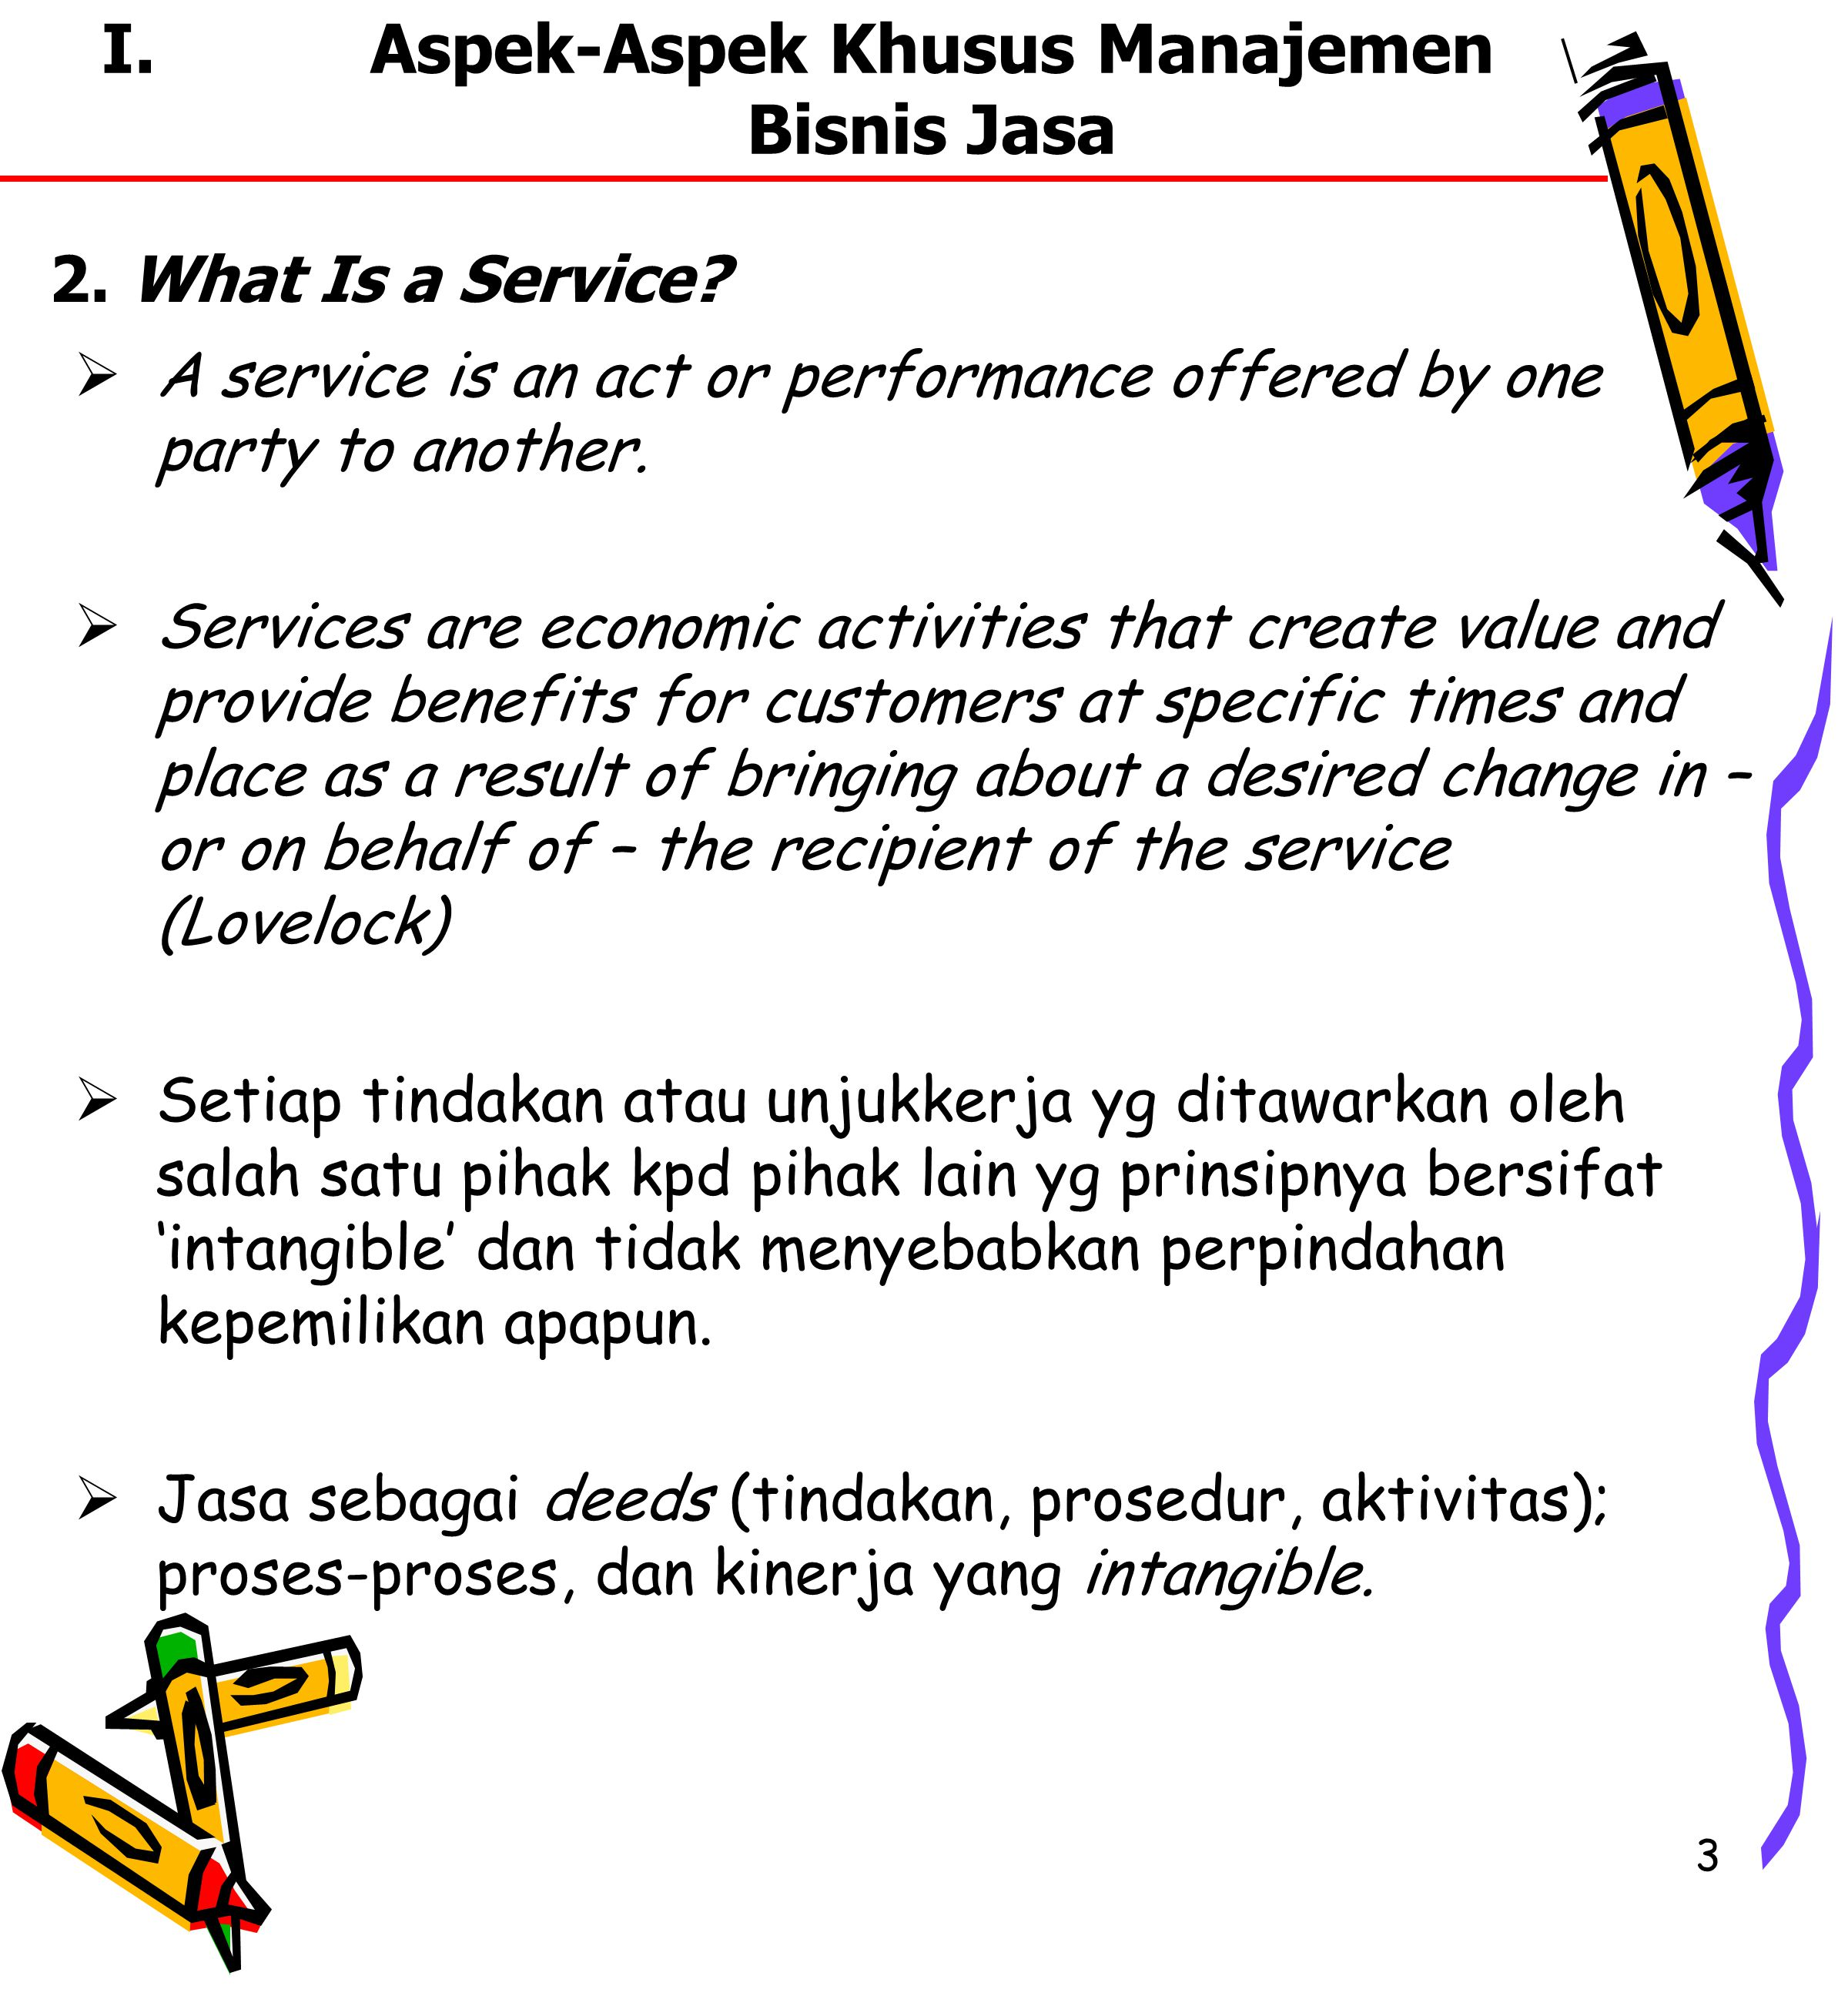 3 I.Aspek-Aspek Khusus Manajemen Bisnis Jasa  A service is an act or performance offered by one party to another.  Services are economic activities